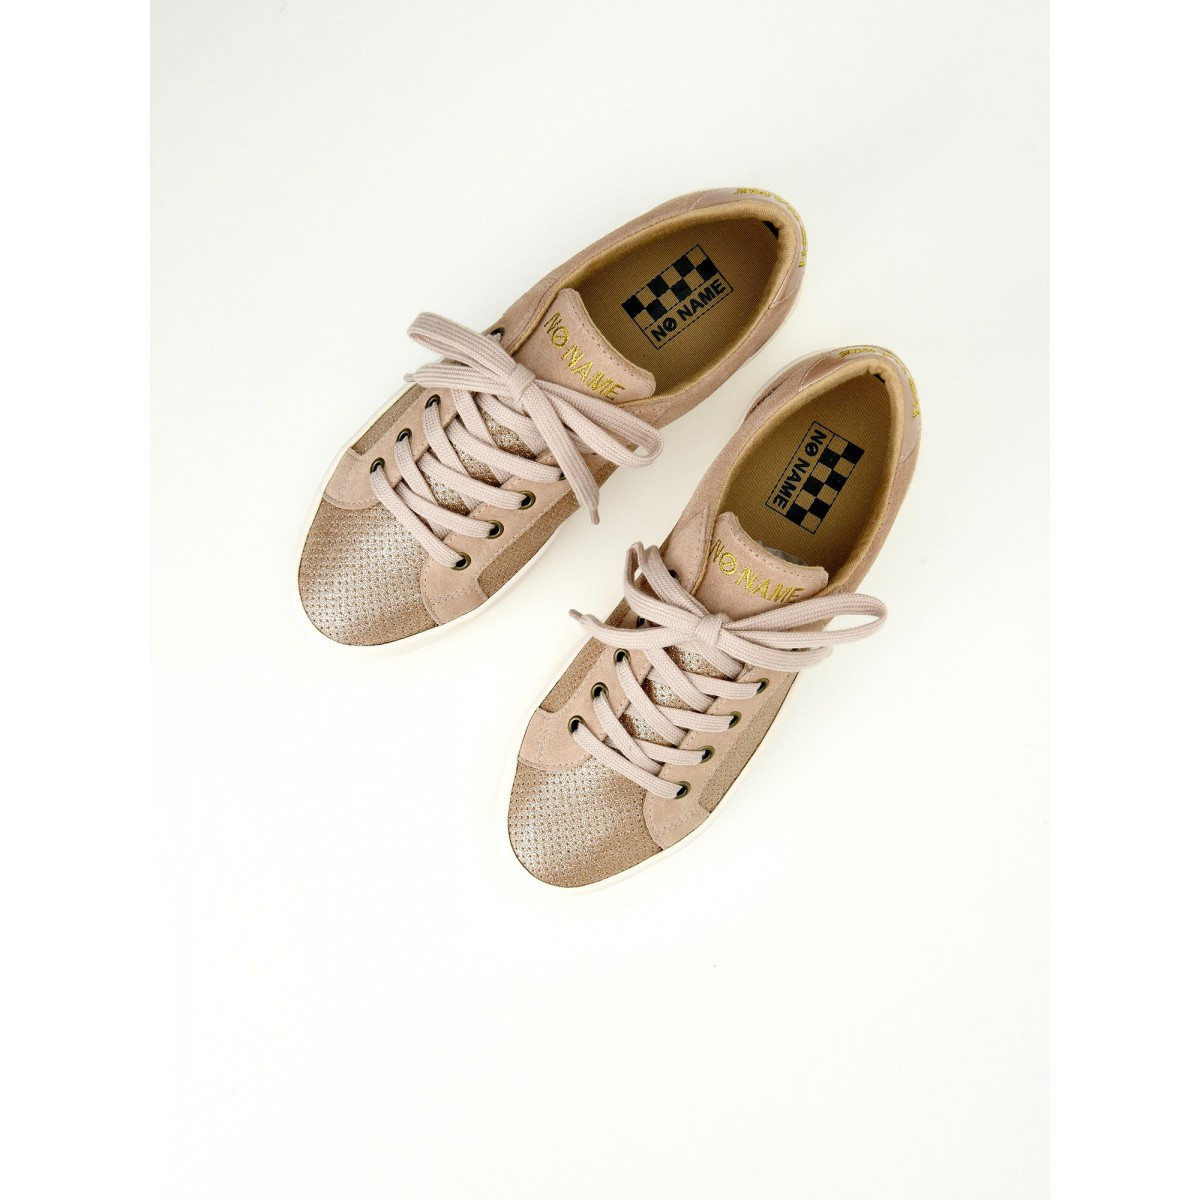 No Name PLATO BRIDGE - ALL STAR/SUEDE - PINK/POUDRE